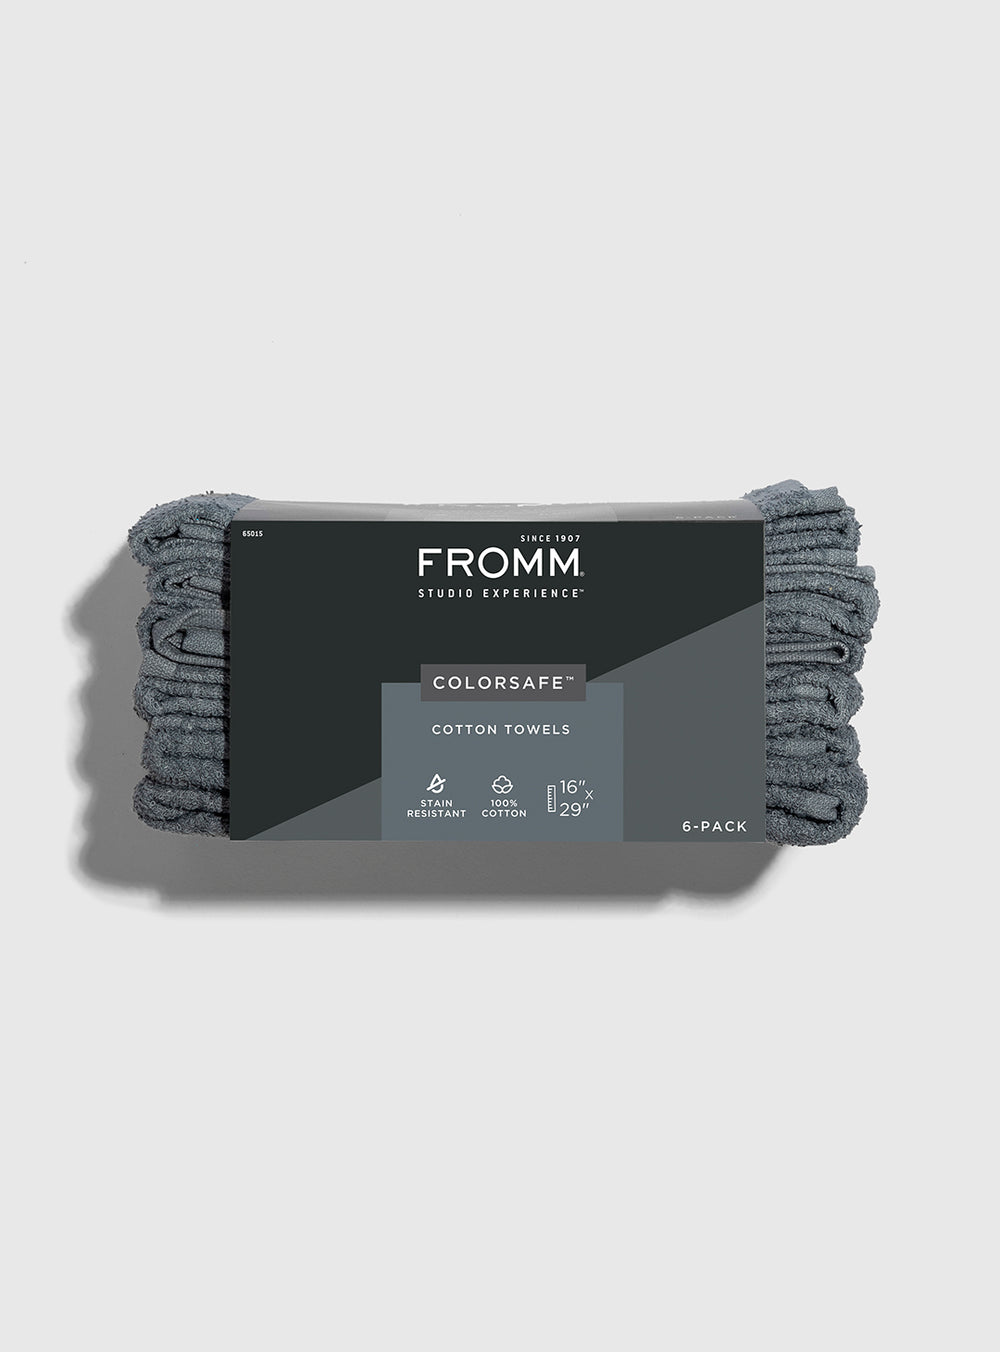 Fromm Pro Professional Hair Salon 6 pack of grey Colorsafe Cotton Towels